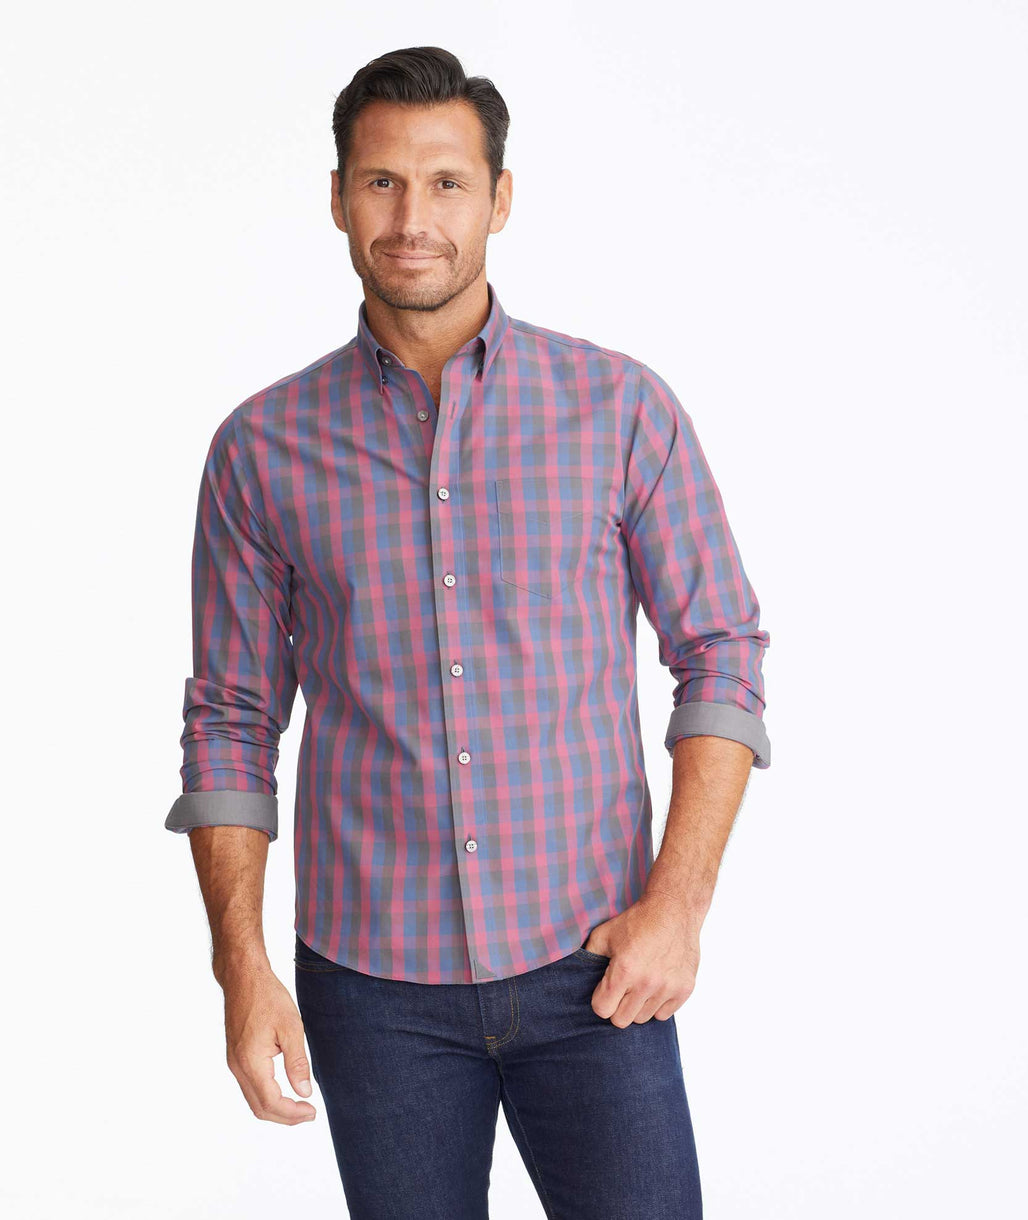 Model wearing a Dark Red Wrinkle-Free Altamura Shirt